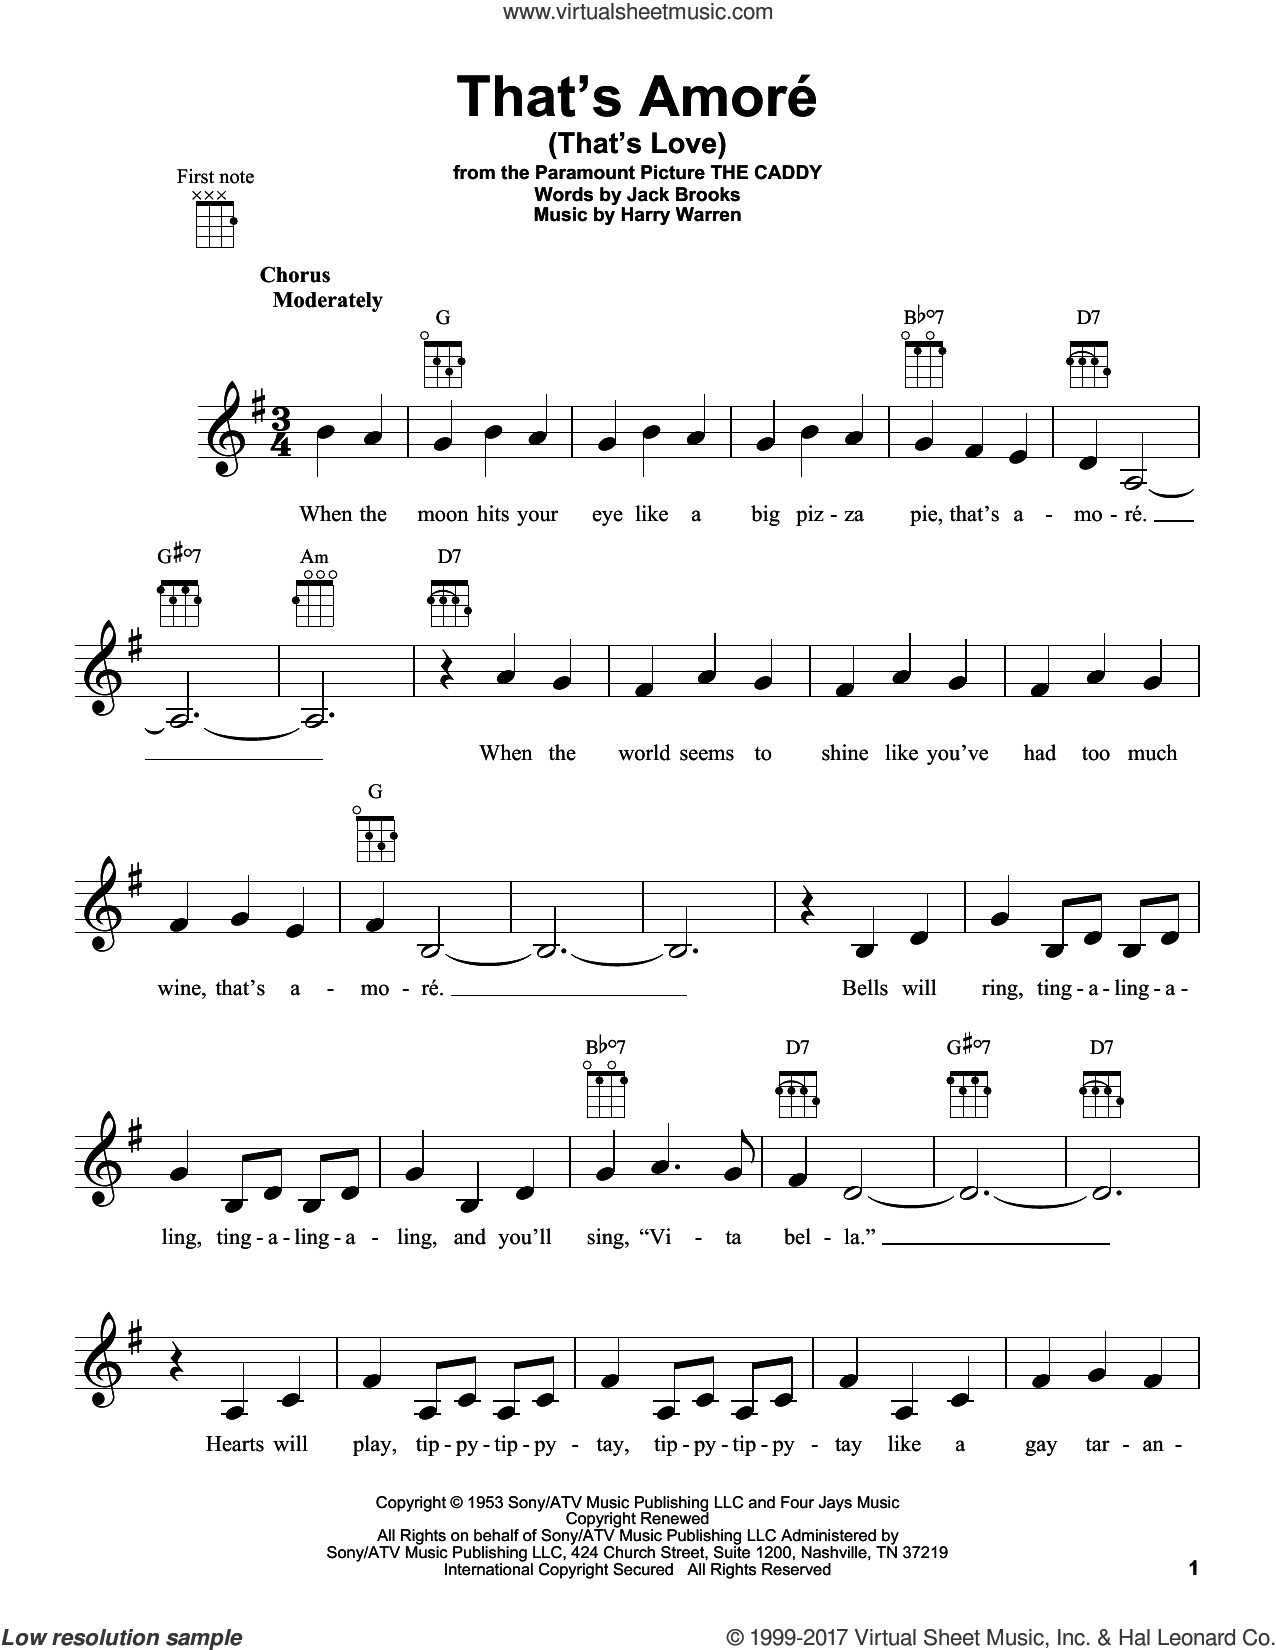 That's Amore (That's Love) sheet music for ukulele by Harry Warren and Jack Brooks, intermediate skill level